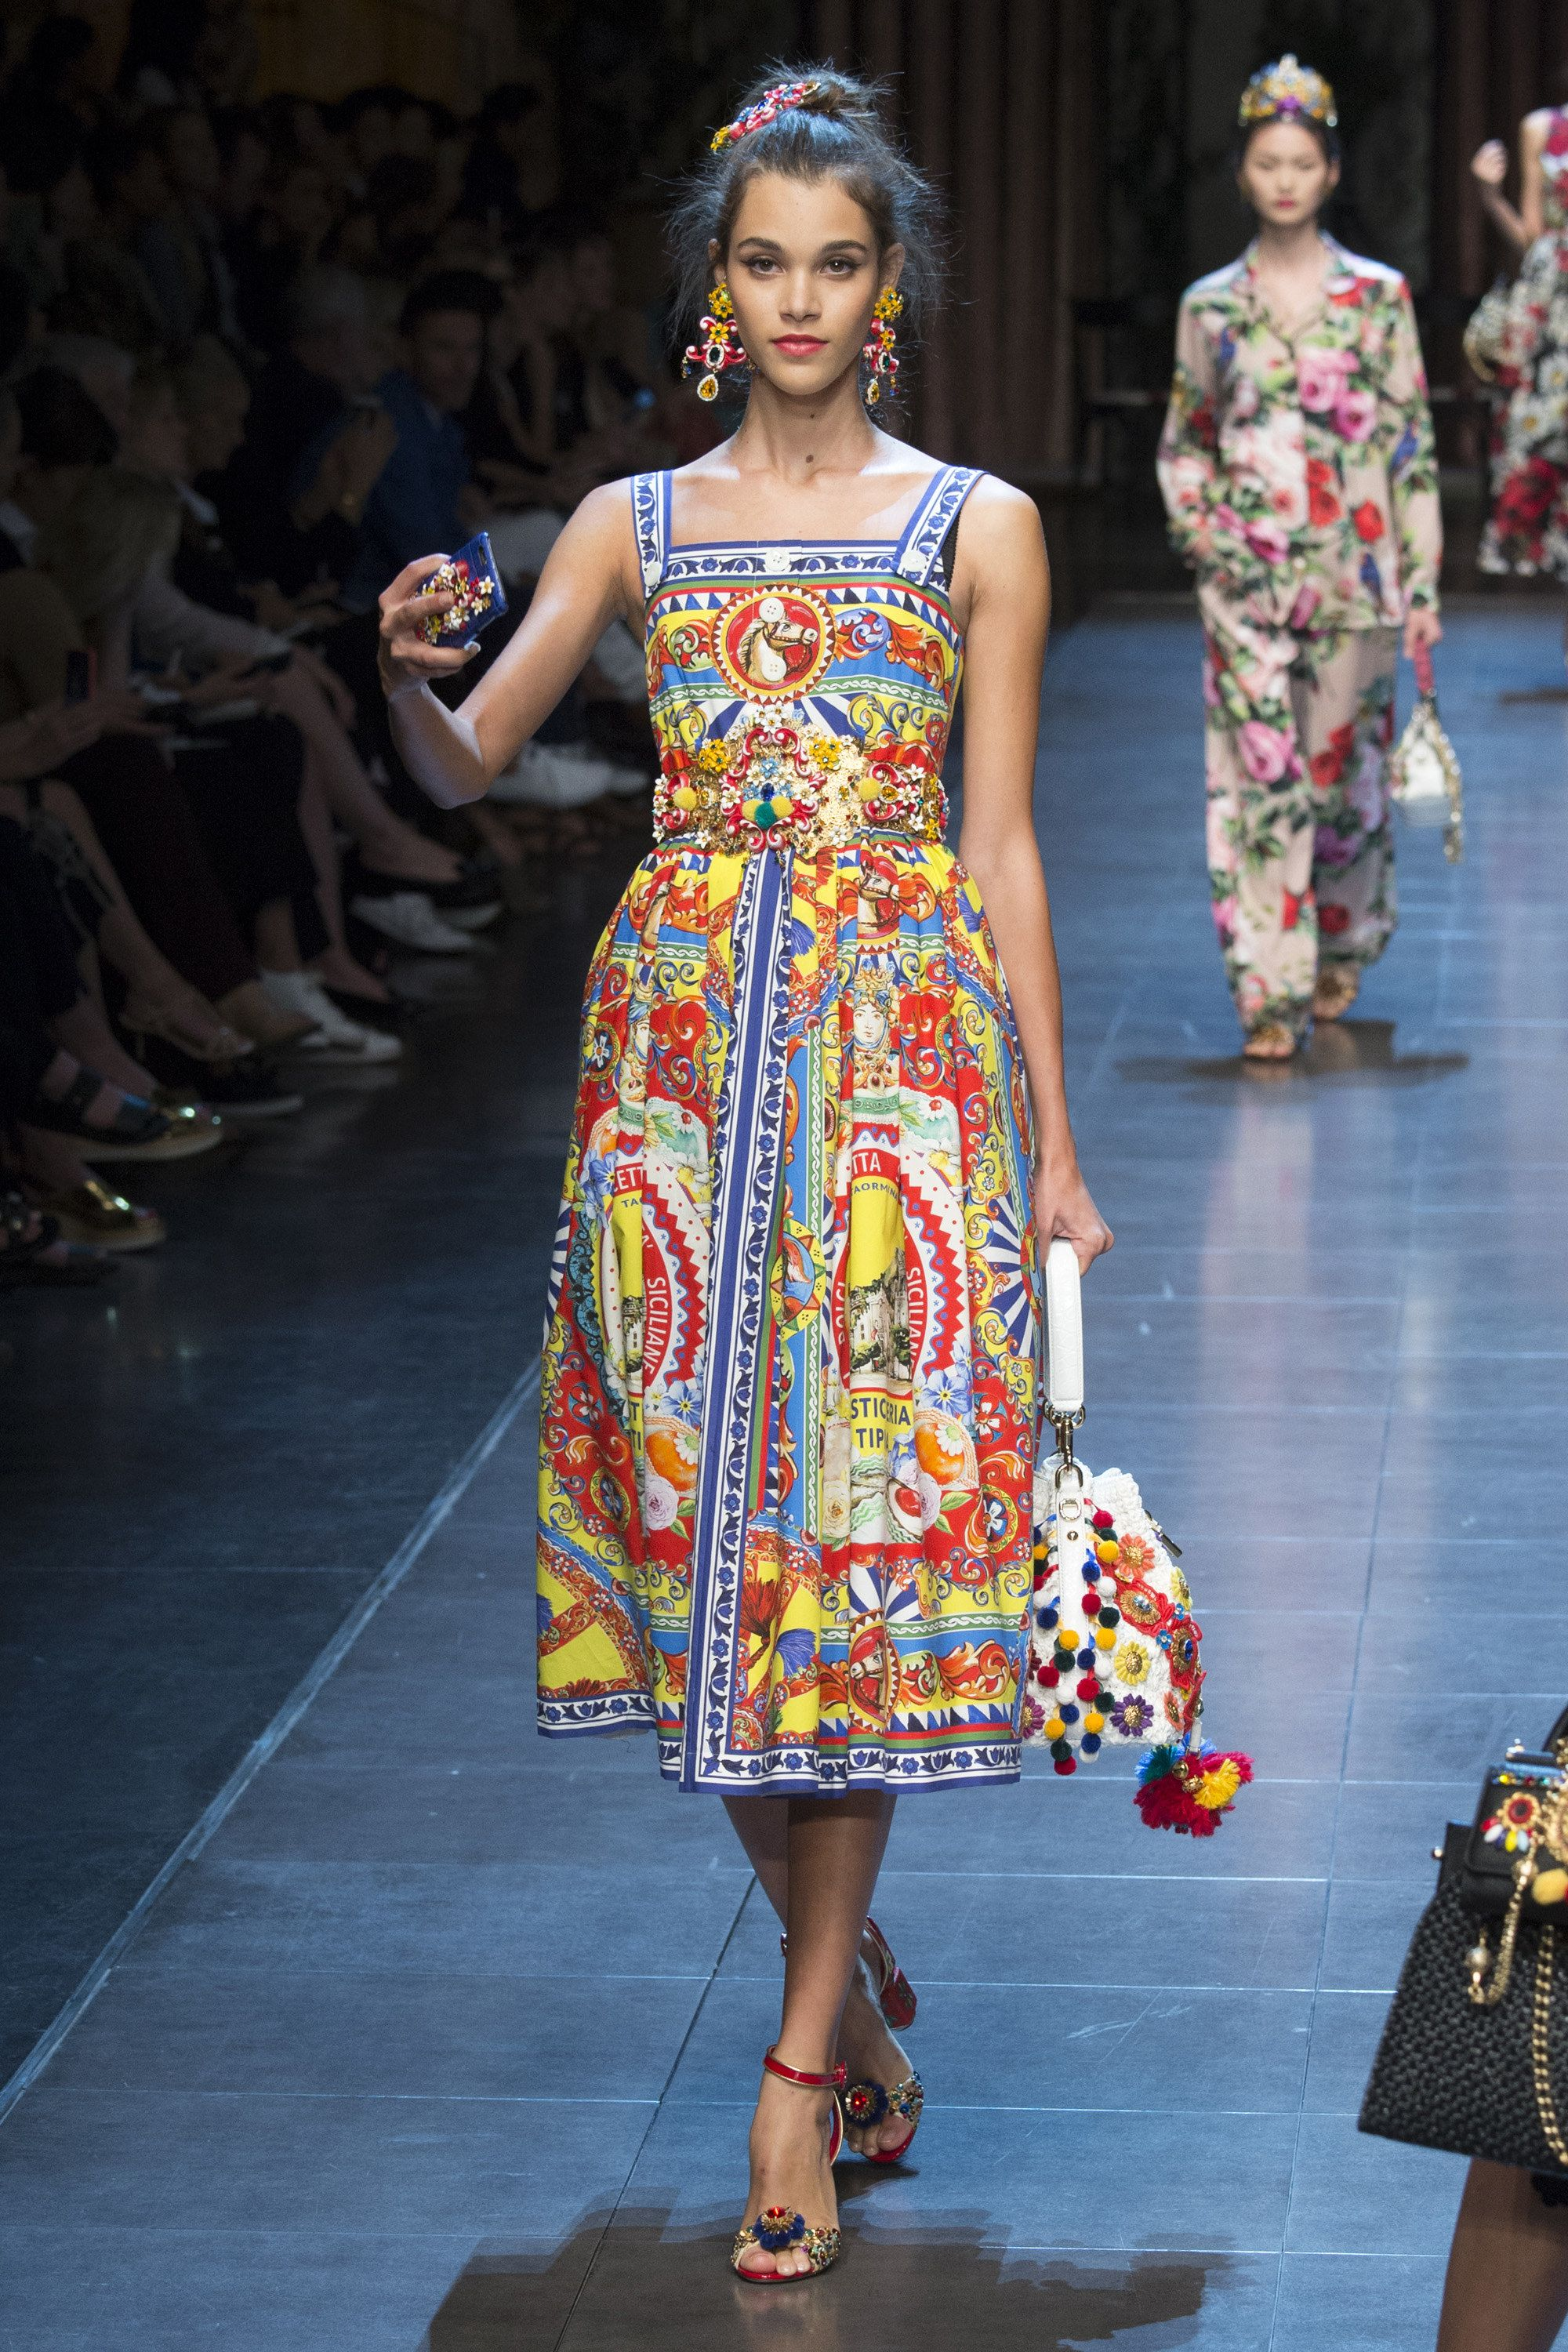 Dolce   Gabbana Spring Summer 2016 Ready-to-Wear Collection via Designers  Domenico Dolce   Stefano Gabbana Modeled byPauline Hoarau   Milan   September 27, ... 85c5a0cea44e